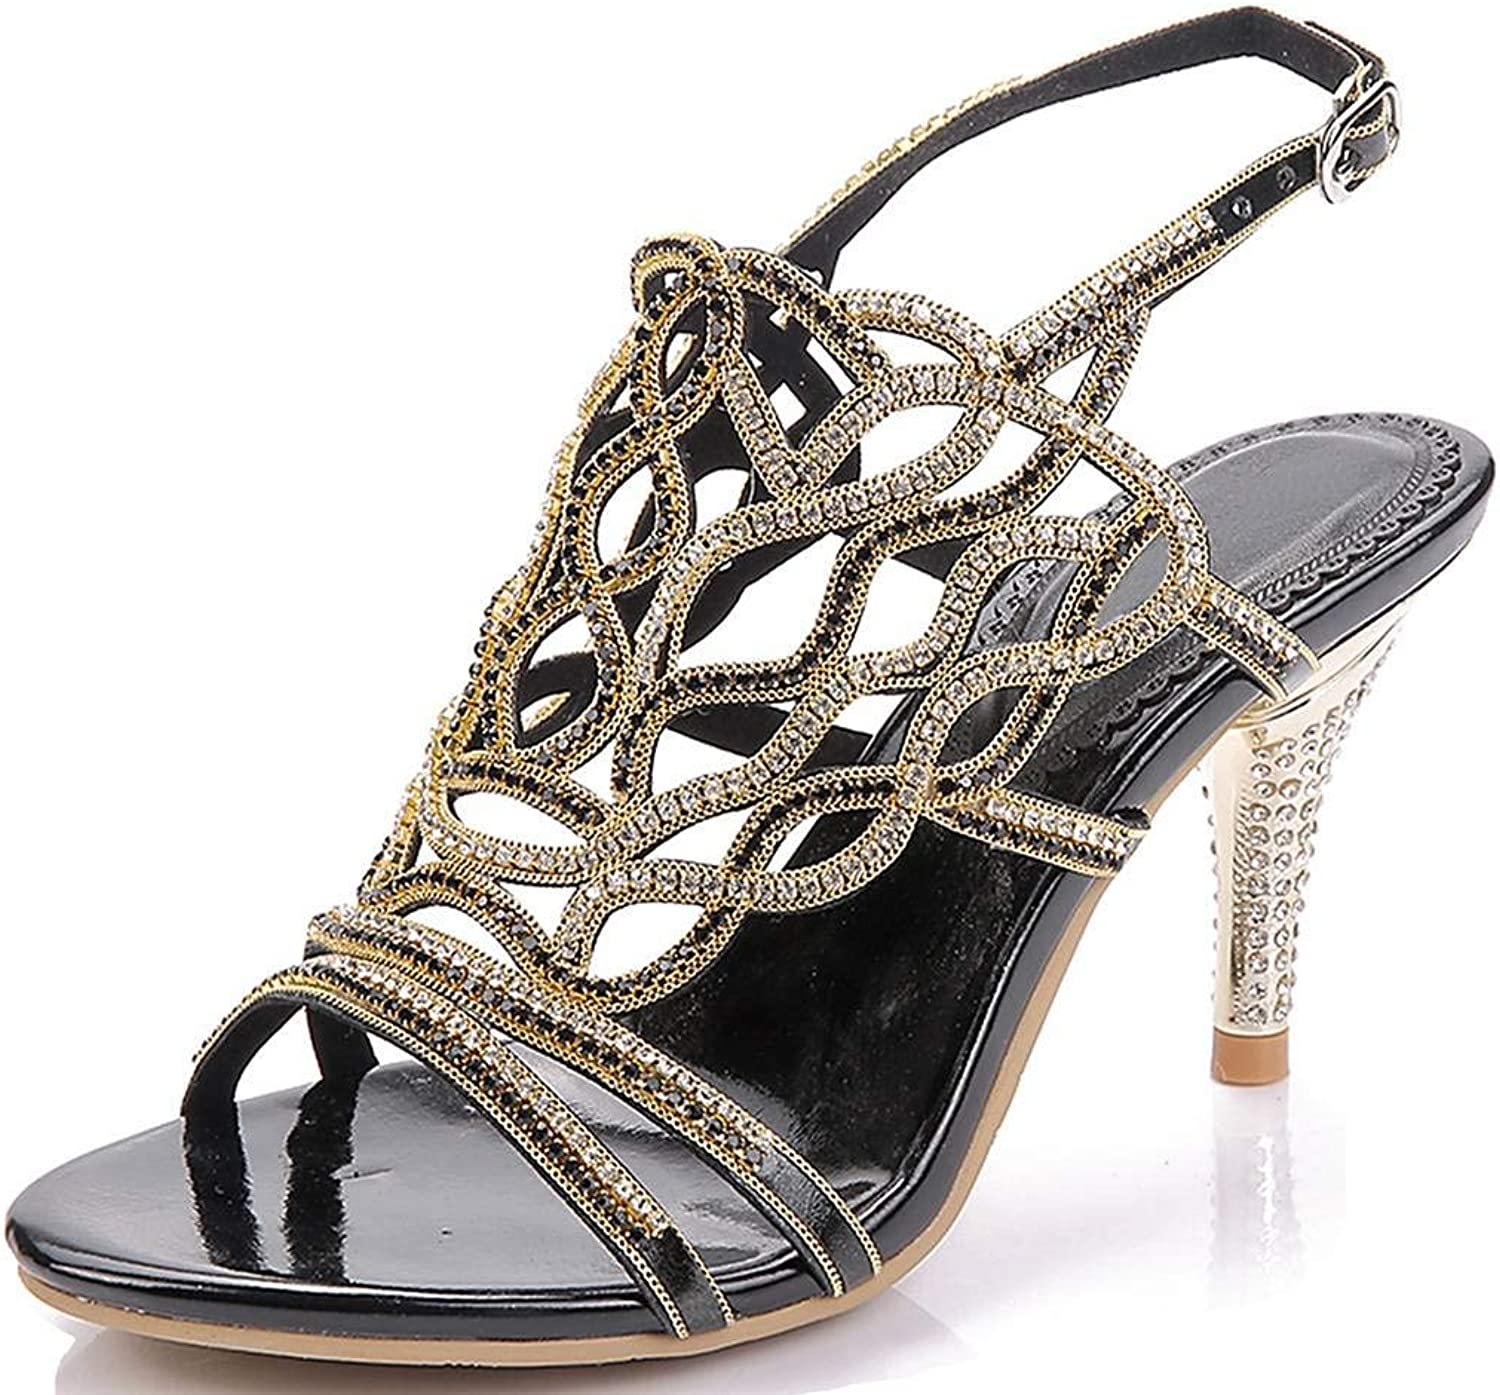 YooPrettyz Strappy Wedding Shield Sandals Rhinestone Cutouts Evening High Heels